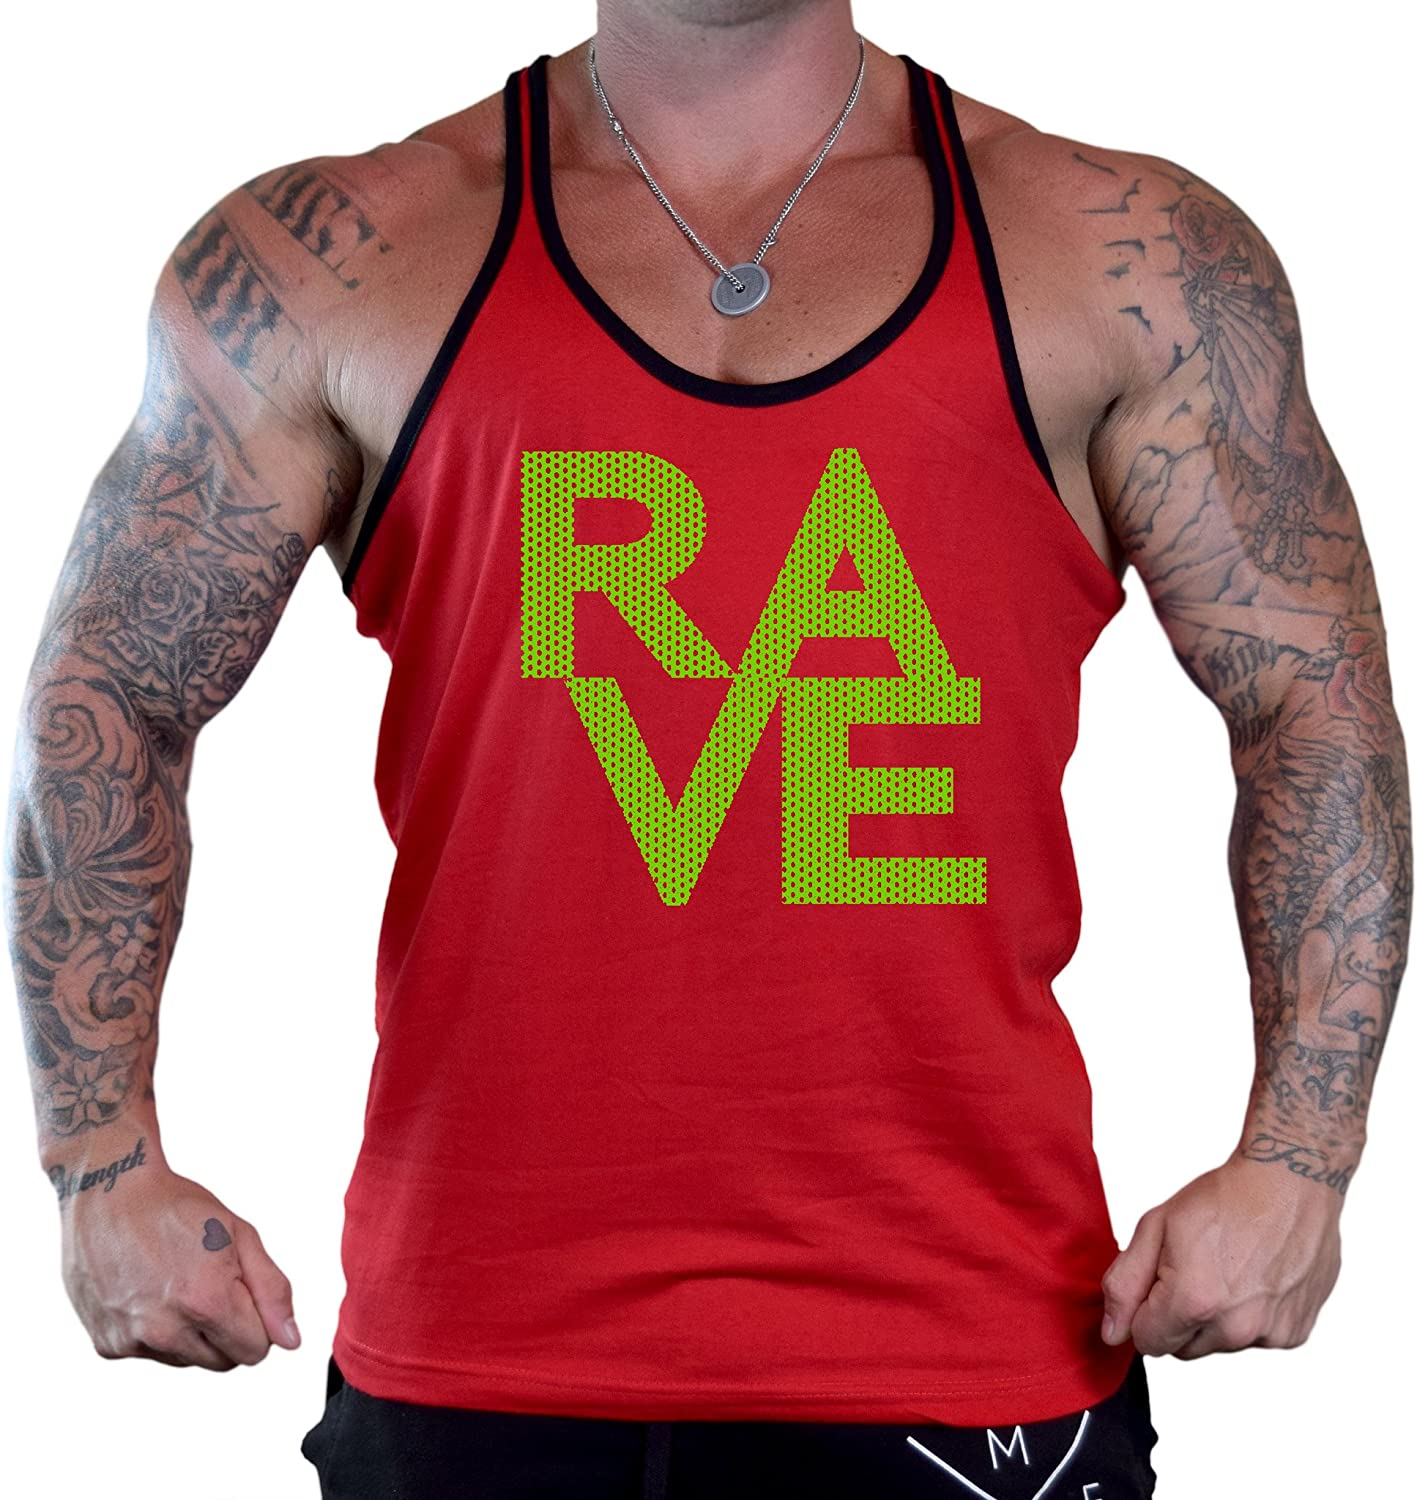 Mens Green Mesh Rave Red Stringer Tank Top